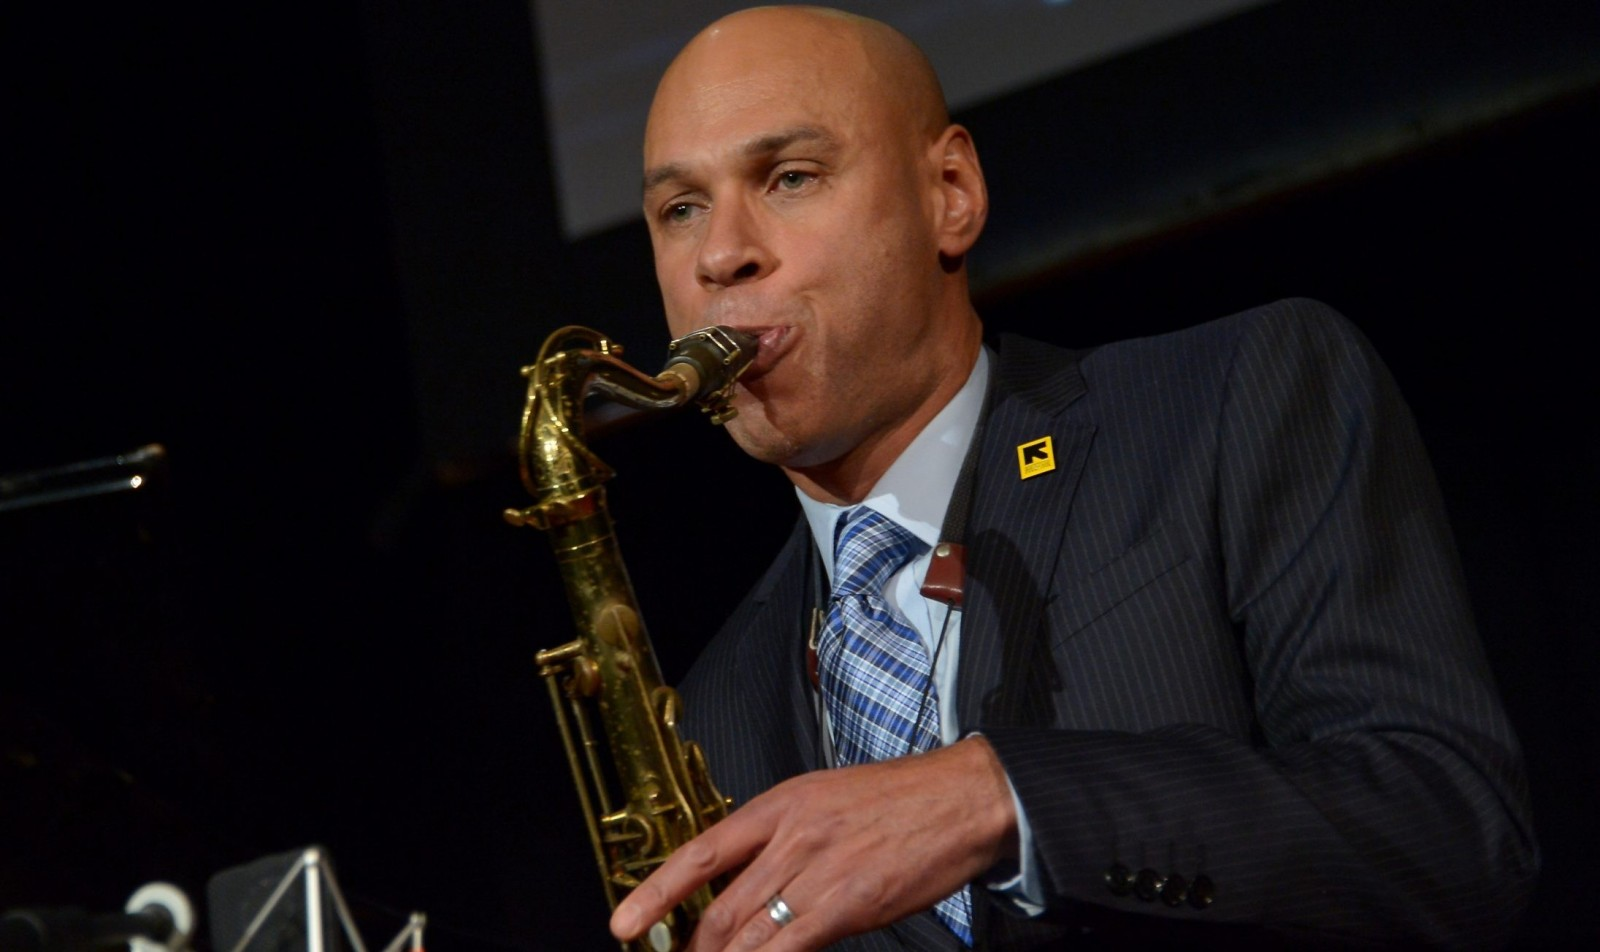 Joshua Redman is part of the 2015-16 Great Performers Series in Rockwell Hall. (Getty Images)